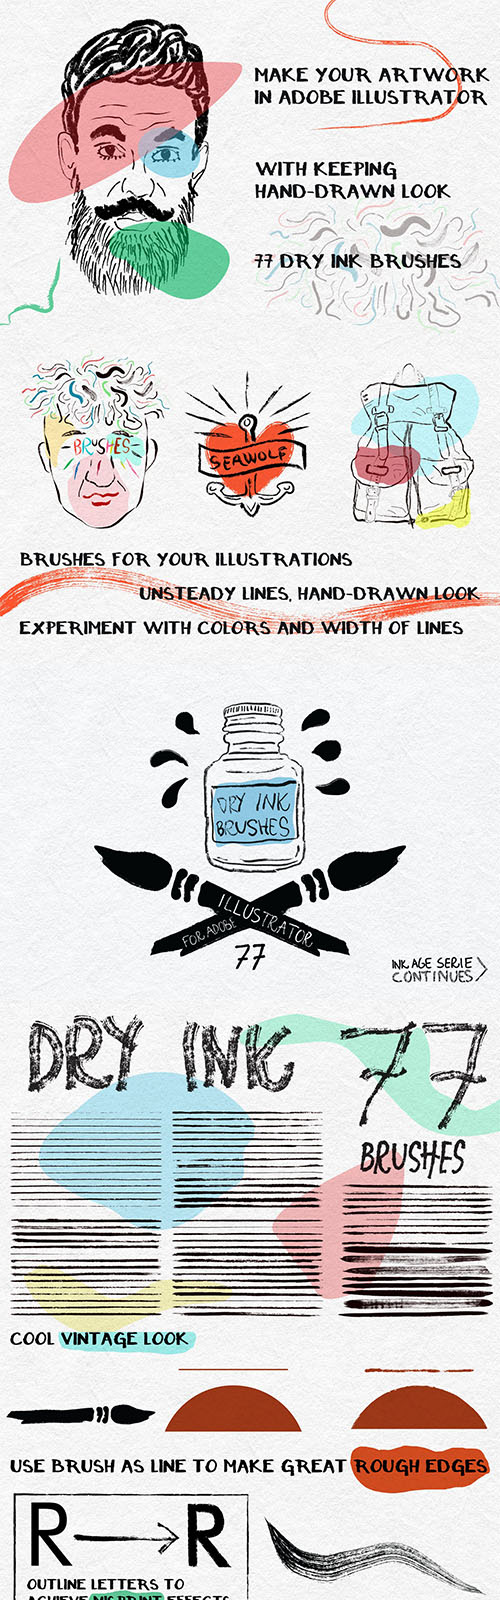 Dry Ink Brushes for Adobe Illustrator